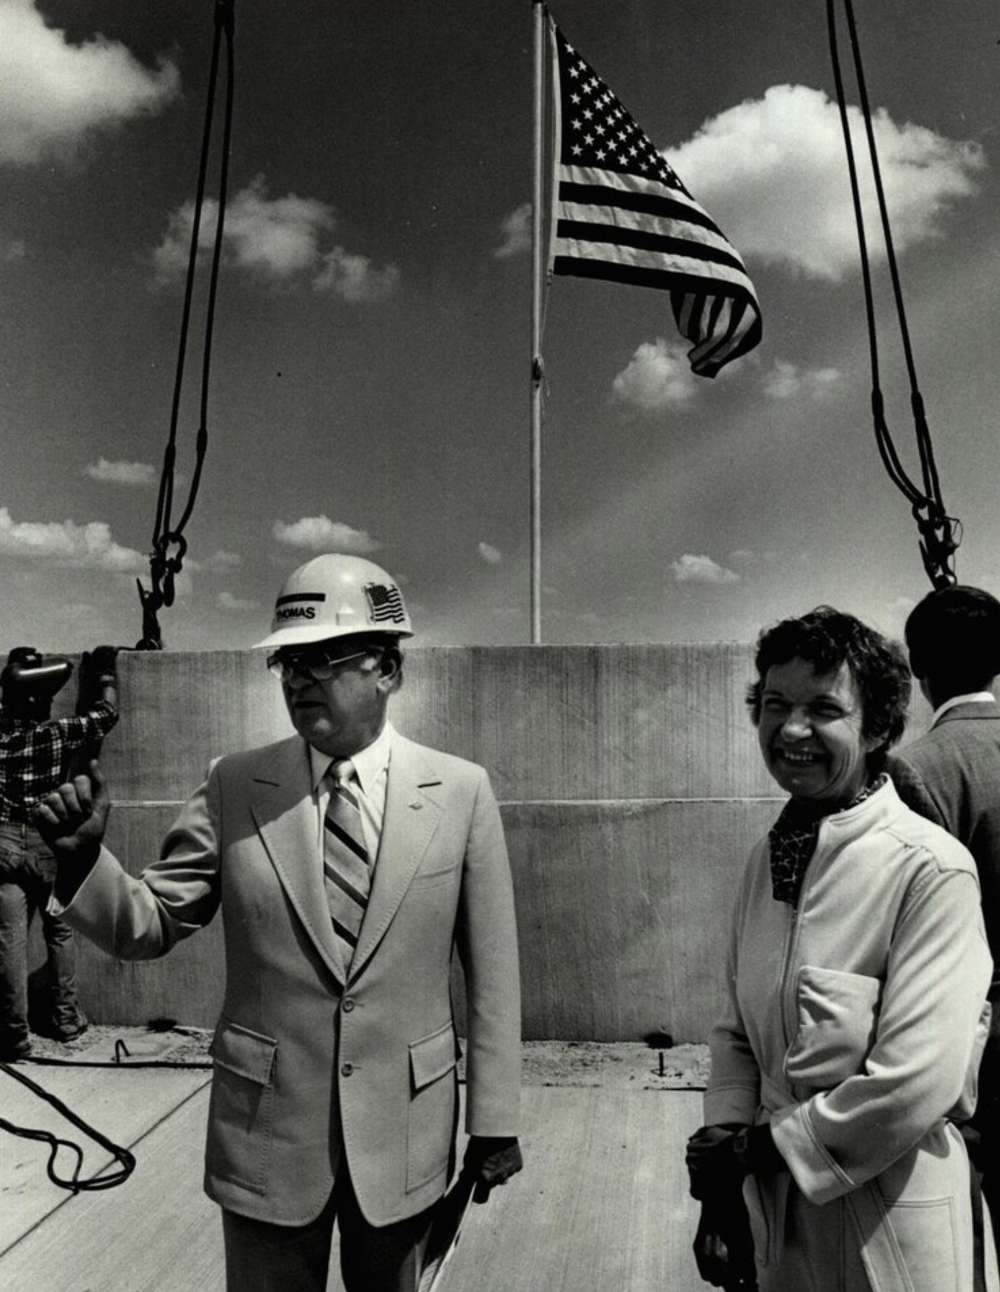 July 10, 1981: Several dignitaries including Oklahoma City Mayor Patience Latting, right, were on hand for the topping-out ceremony for the new multi-level parking garage at Will Rogers World Airport. [Photo by Roger Klock, The Oklahoman Archives]